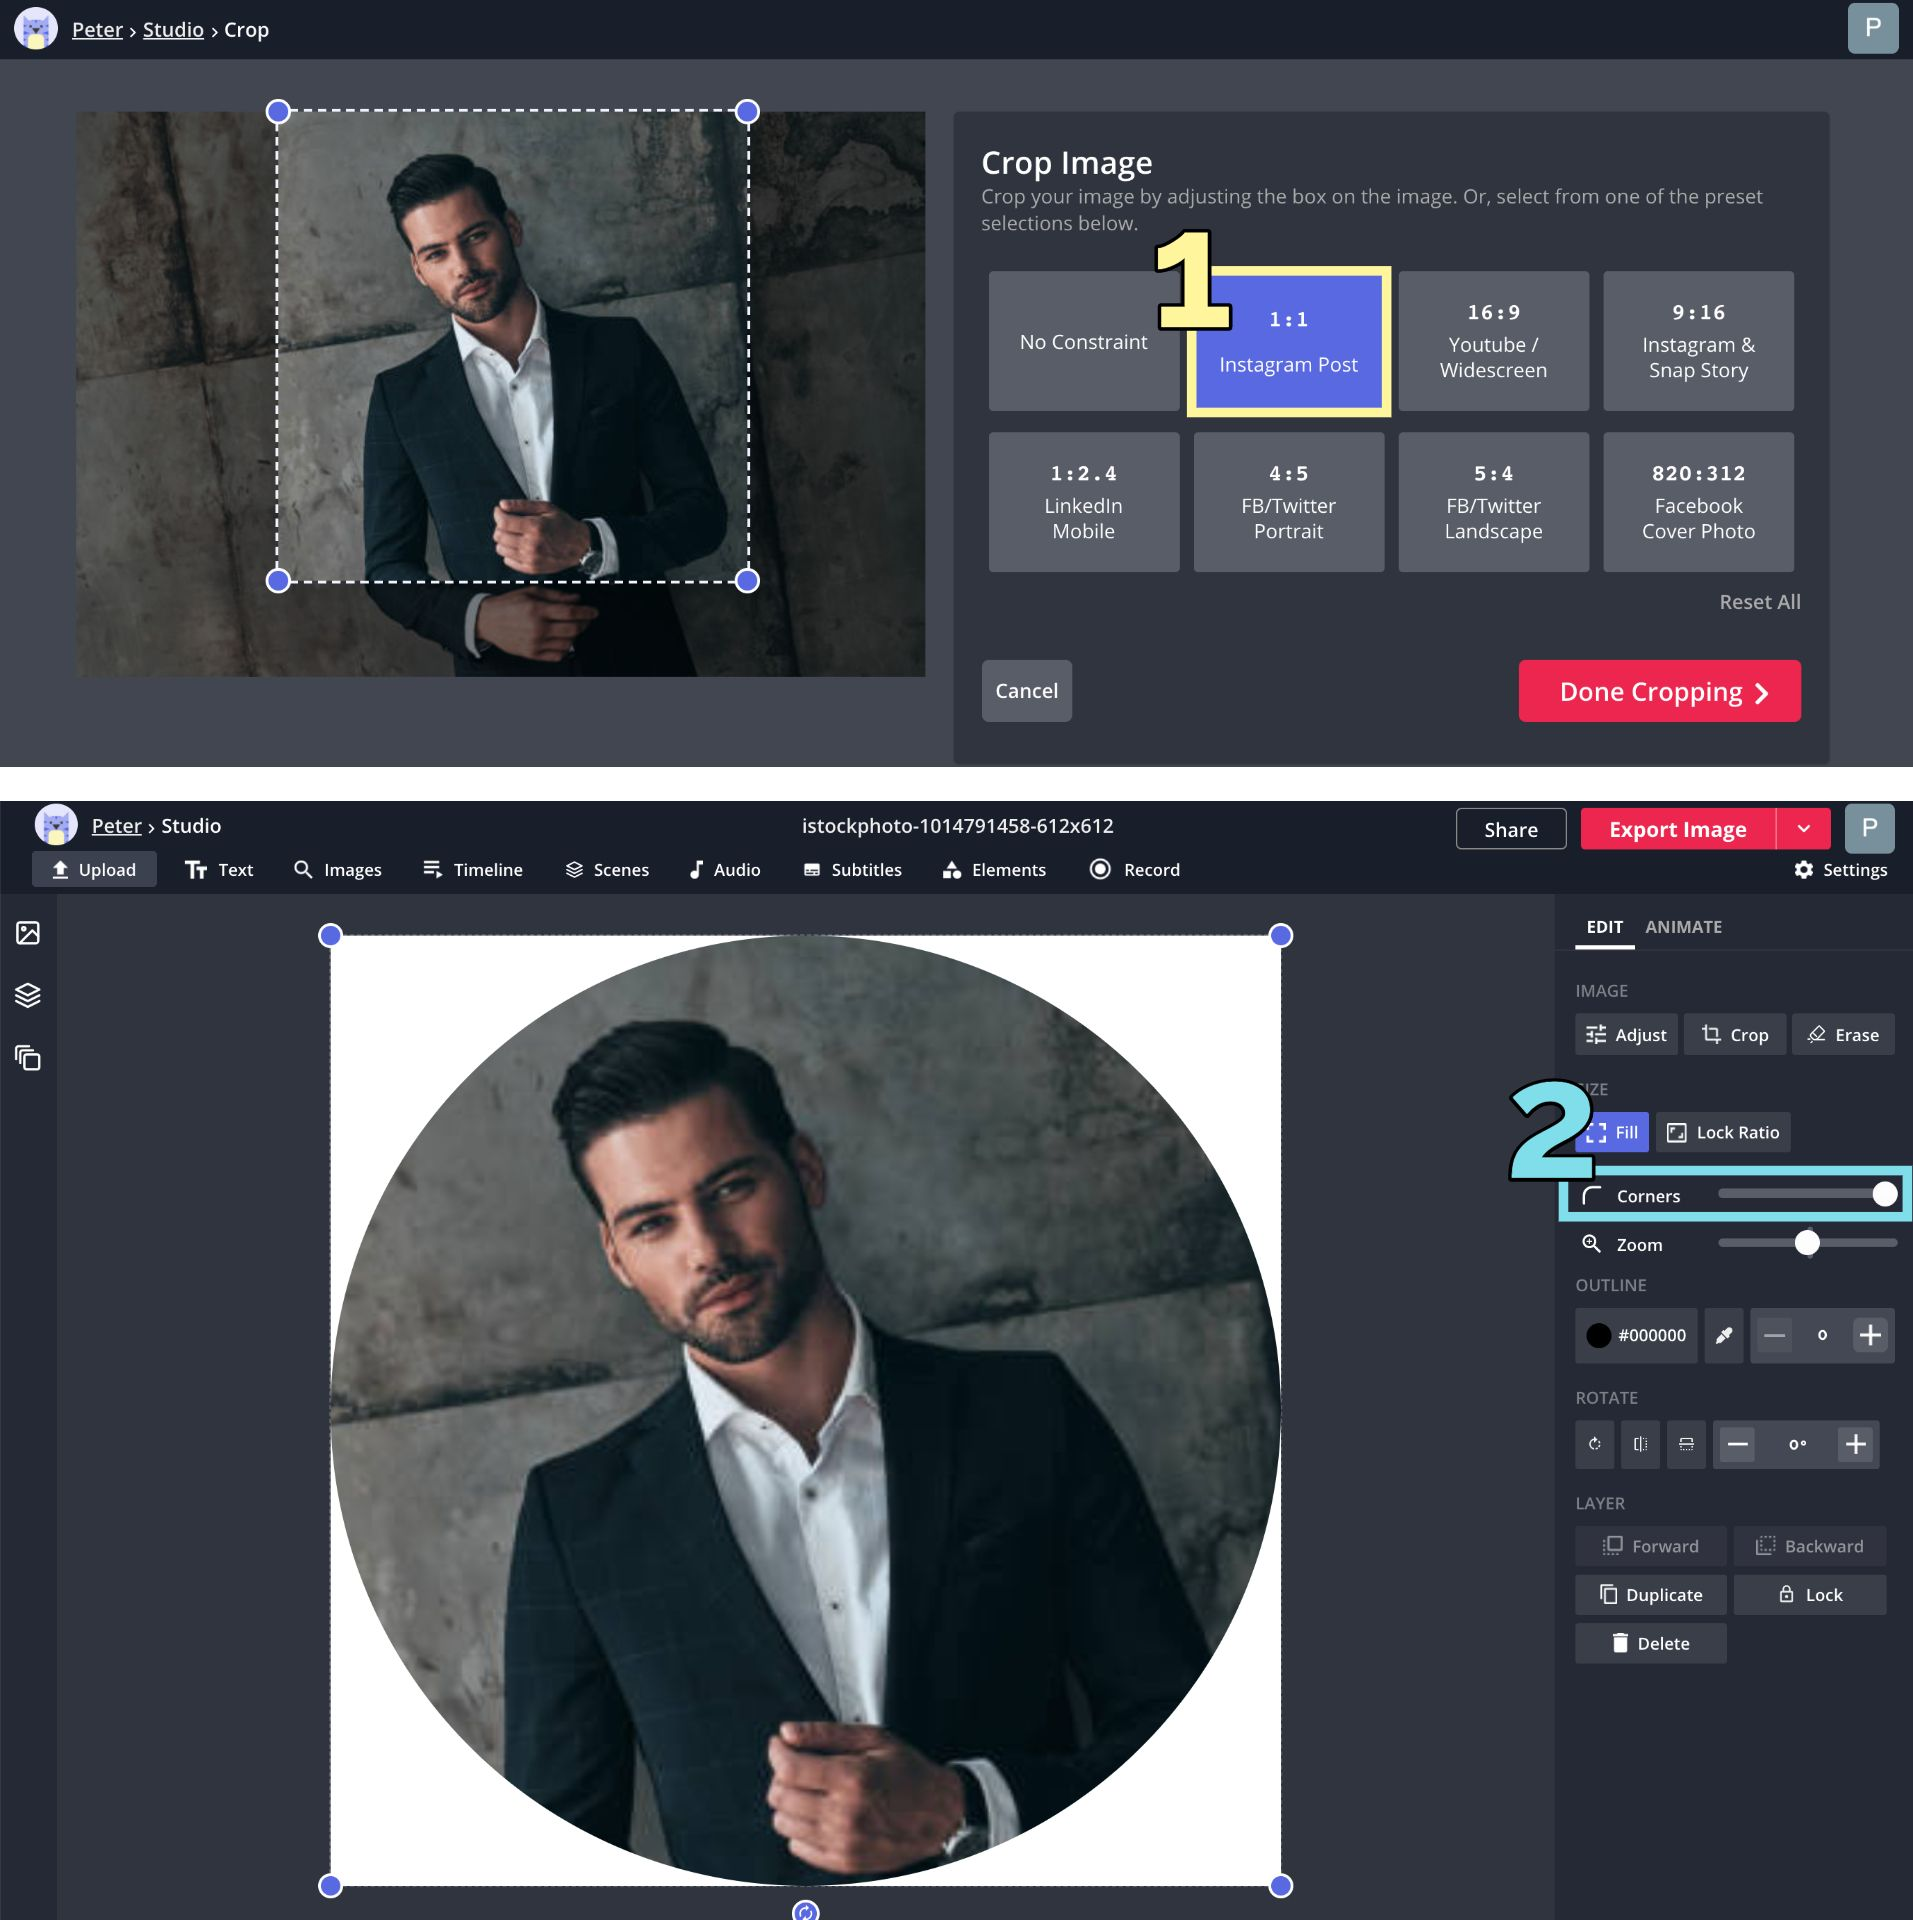 Screenshots showing how to crop an image to a circle in the Kapwing Studio.